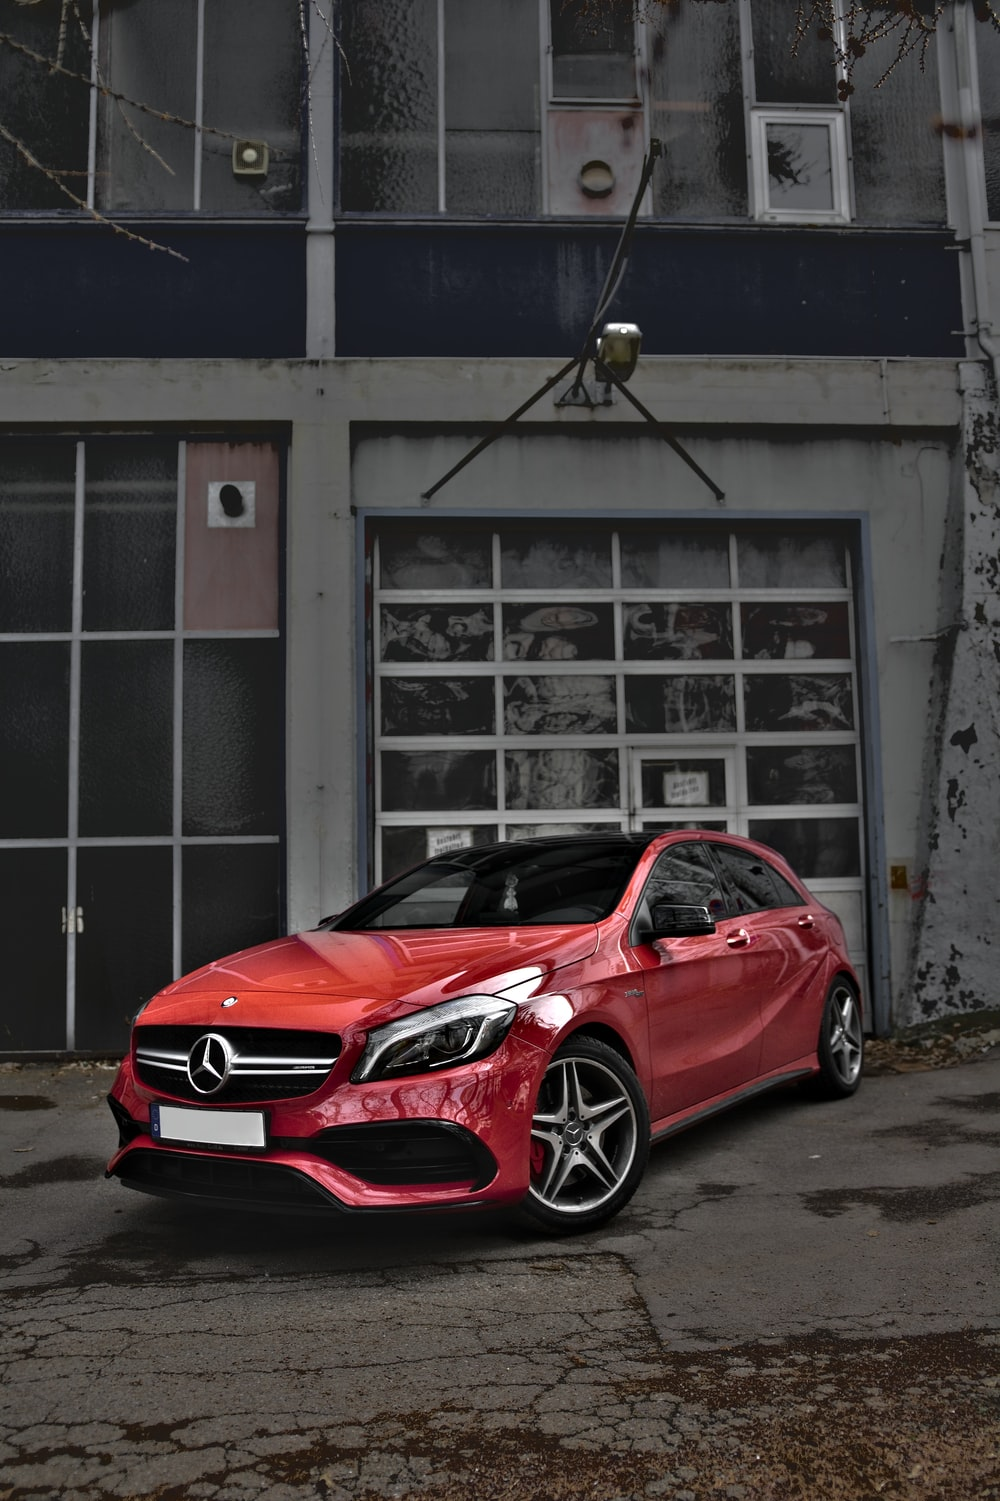 red Mercedes-Benz car on road